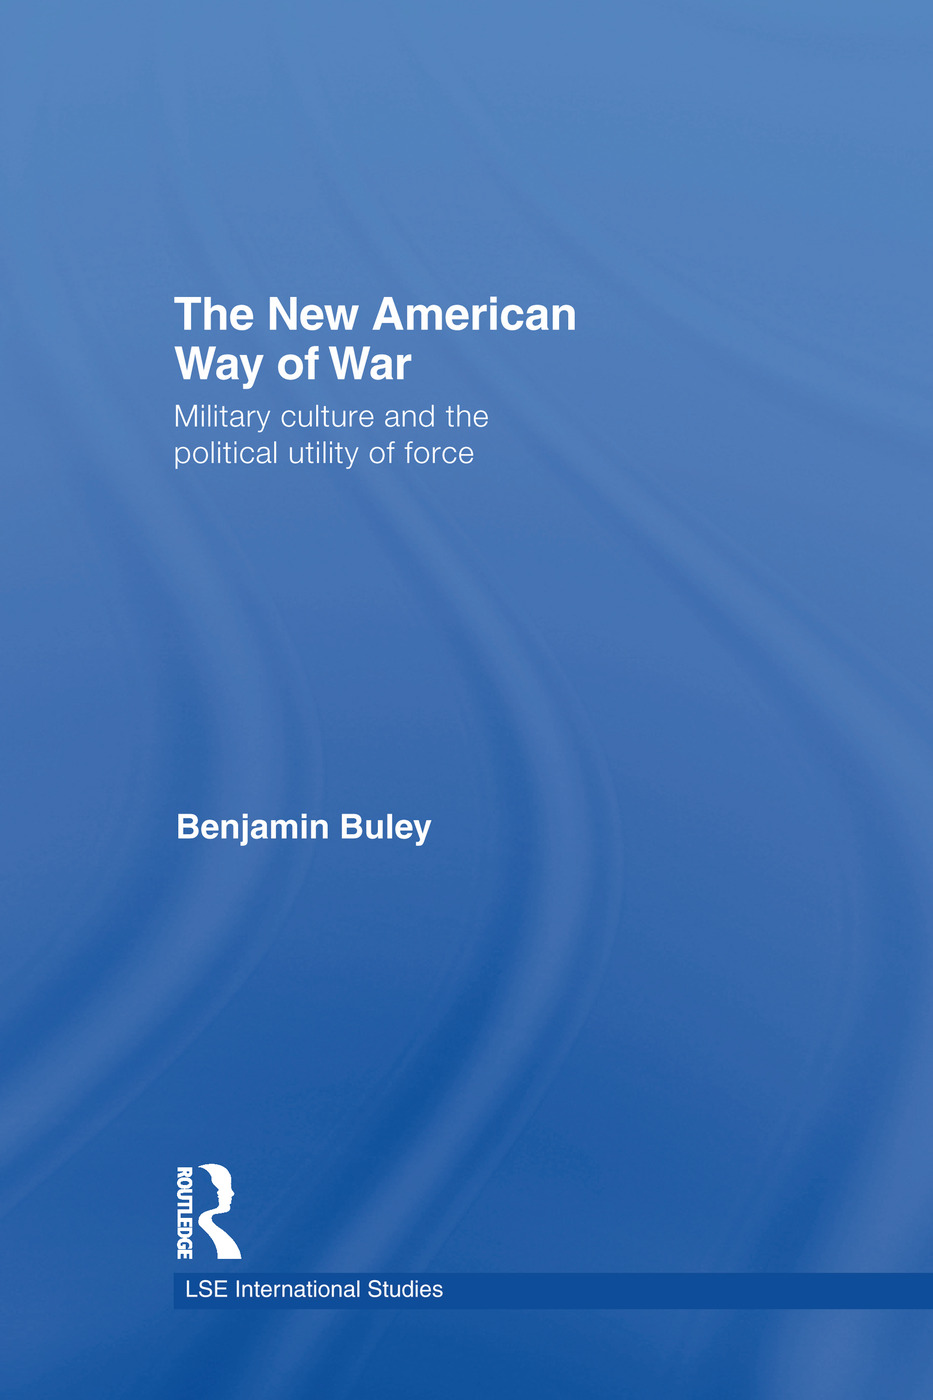 The New American Way of War